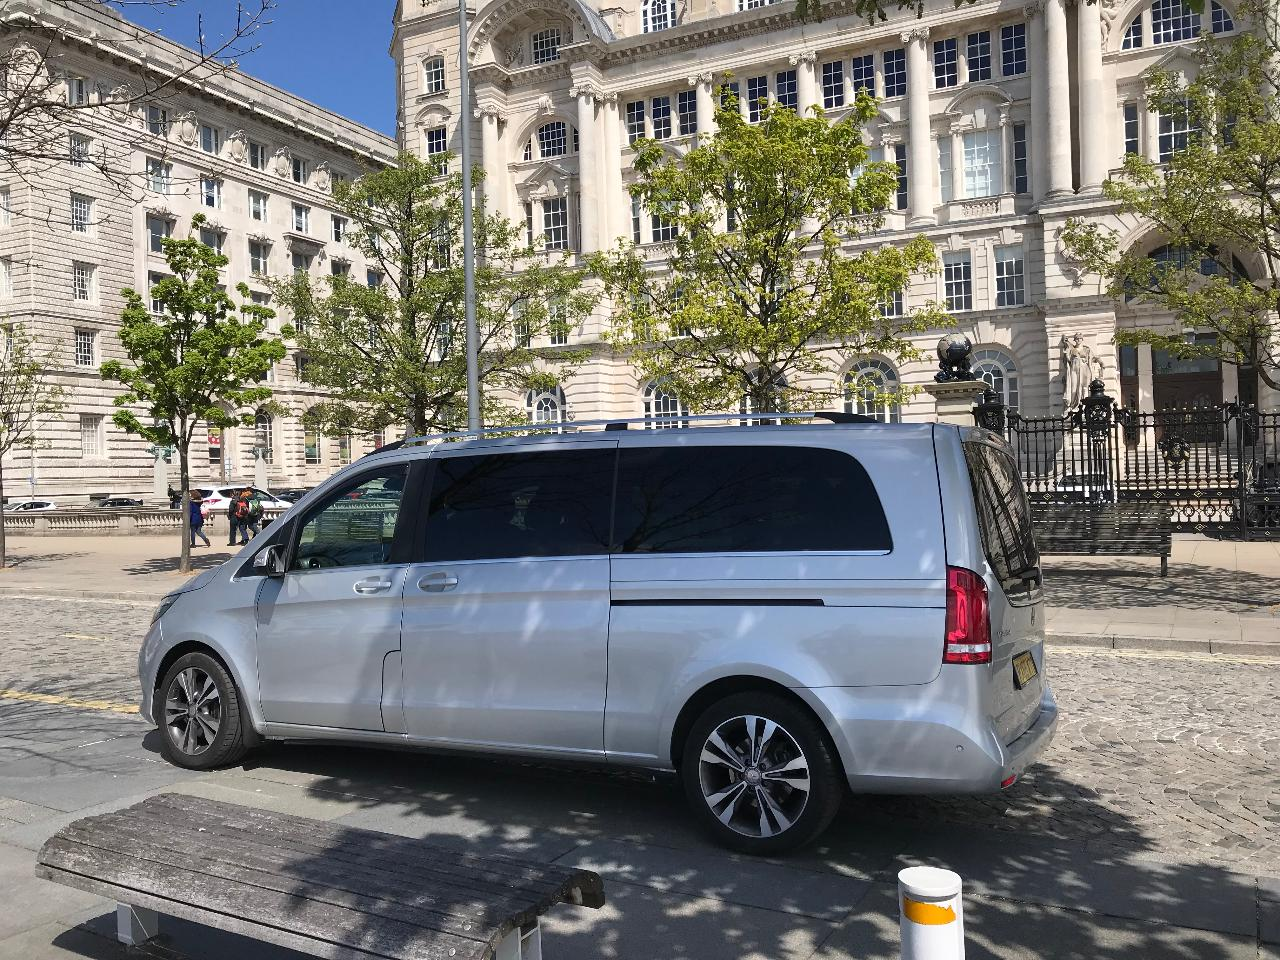 Private Beatles and Liverpool tour in Mercedes MPV - V-class - available in English, French, German or Spanish for up to 6 guests